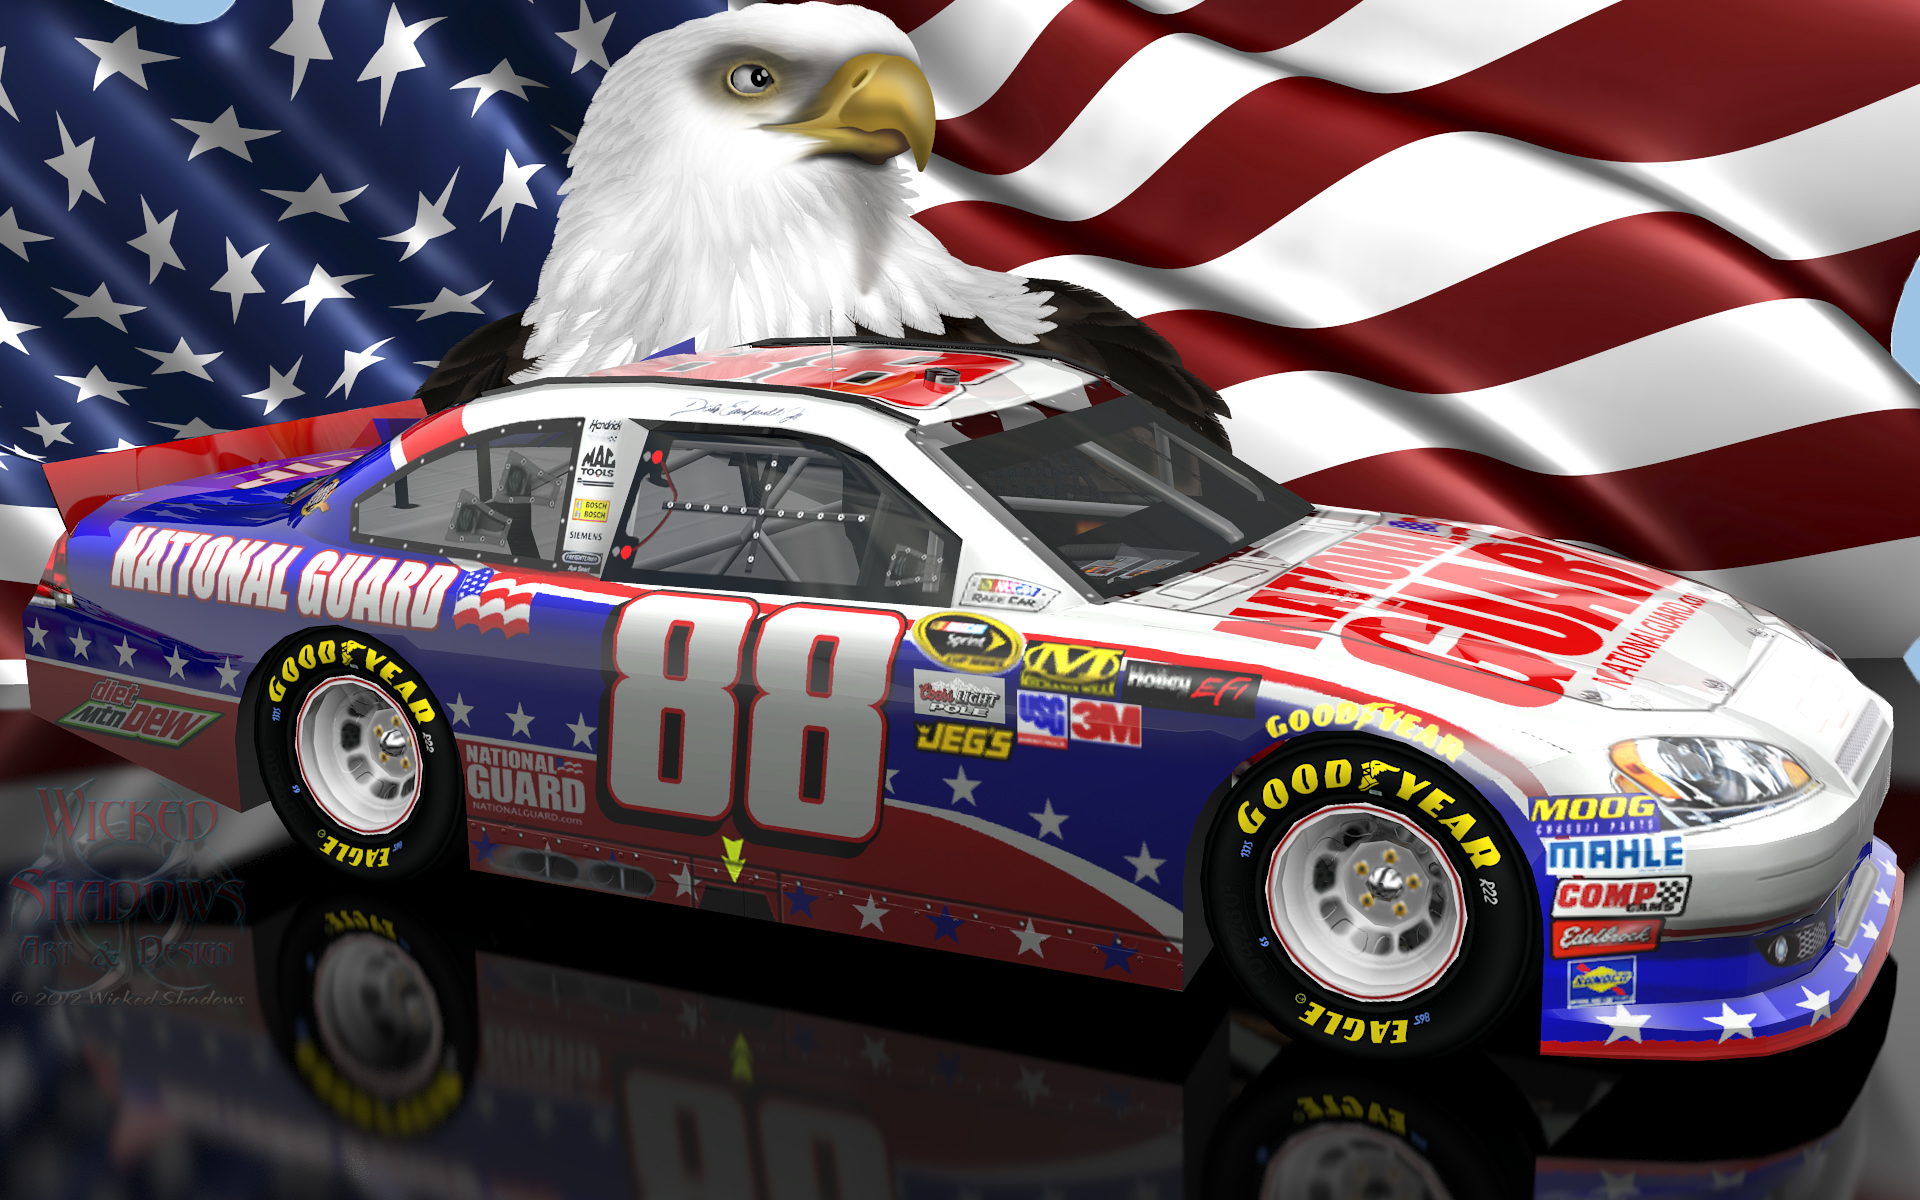 Image - Dale Earnhardt Jr NASCAR Unites Patriotic wallpaper 16x10.jpg | Stock Car Racing Wiki ...